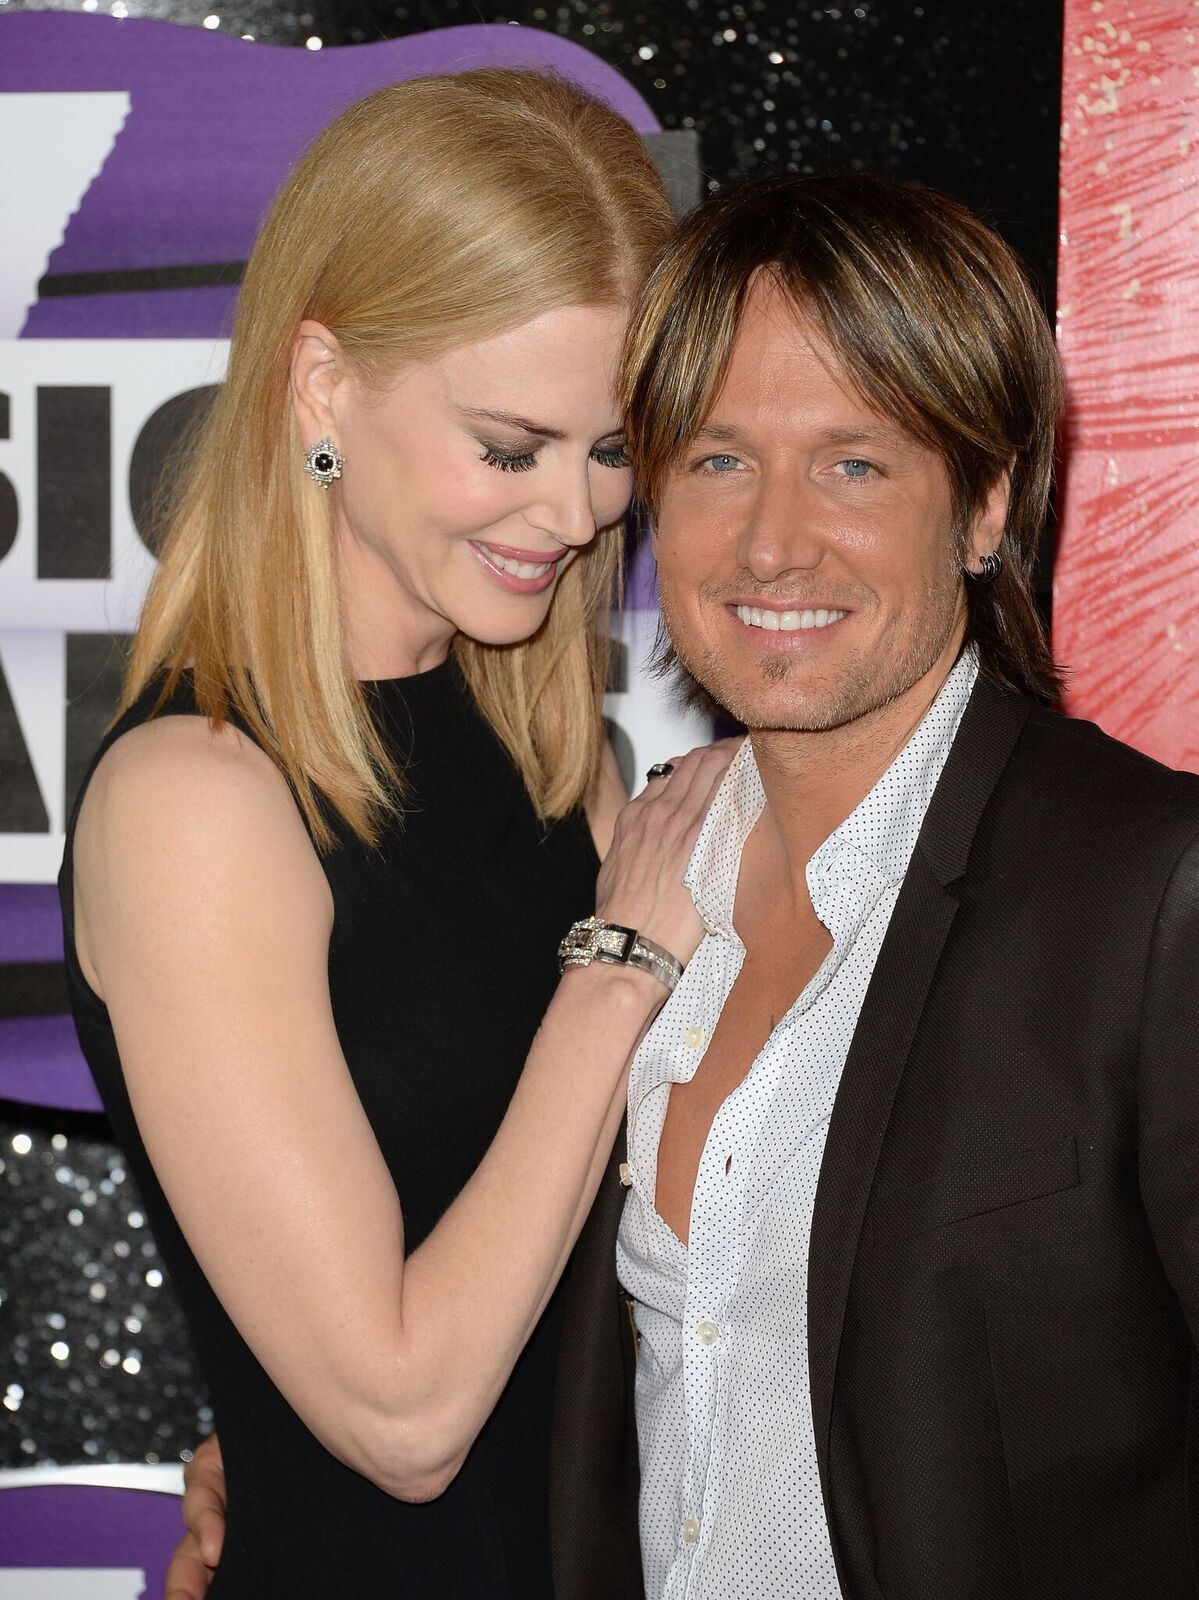 Nicole Kidman and Keith Urban at the CMT Music Awards at the Bridgestone Arena on June 5, 2013, in Nashville, Tennessee | Photo: Jason Merritt/Getty Images